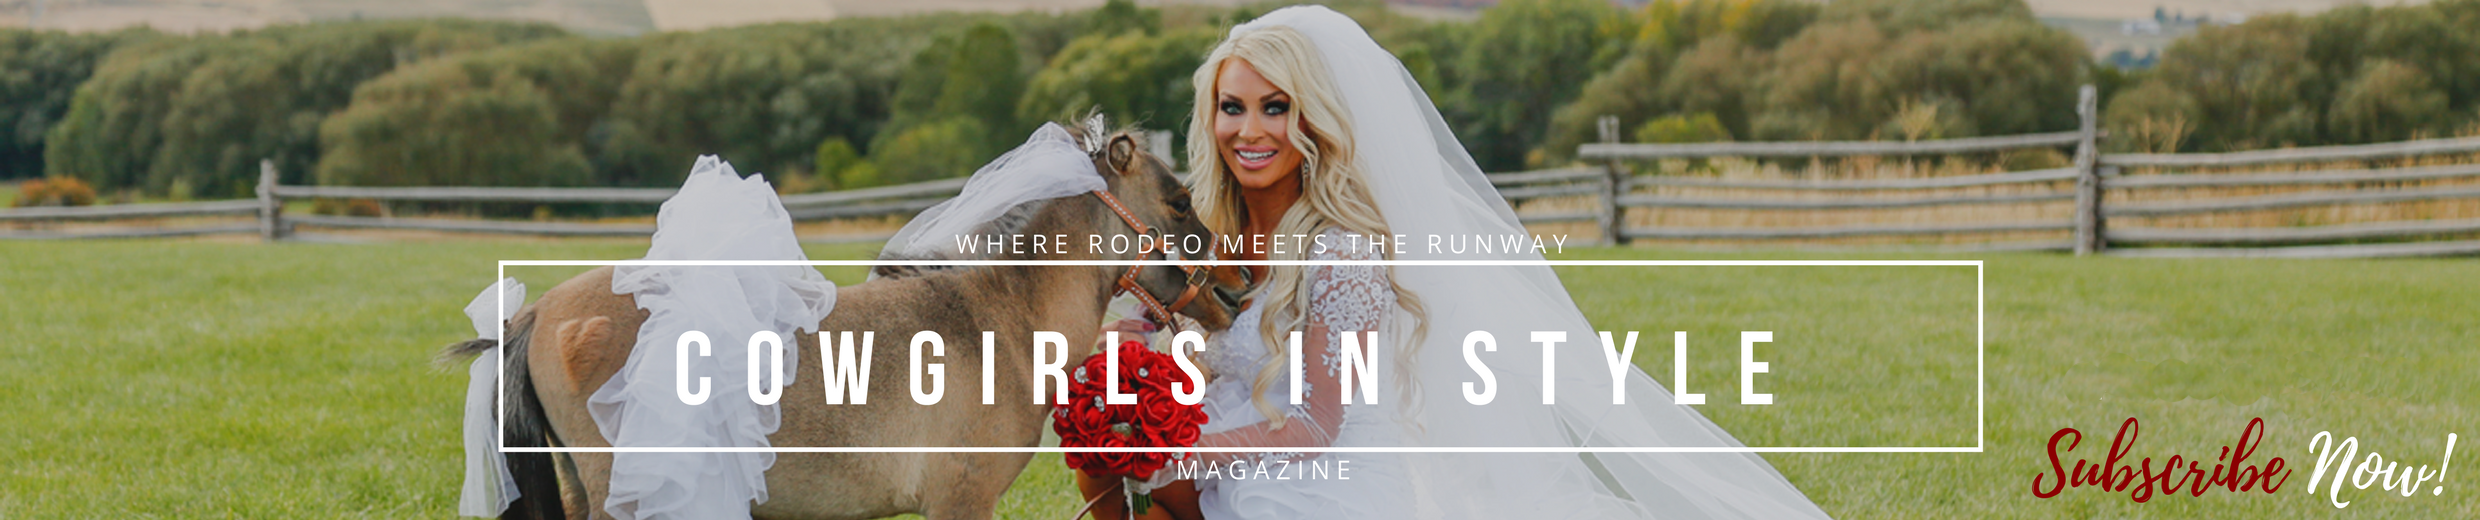 Country Bride Archives - Cowgirls In Style Magazine